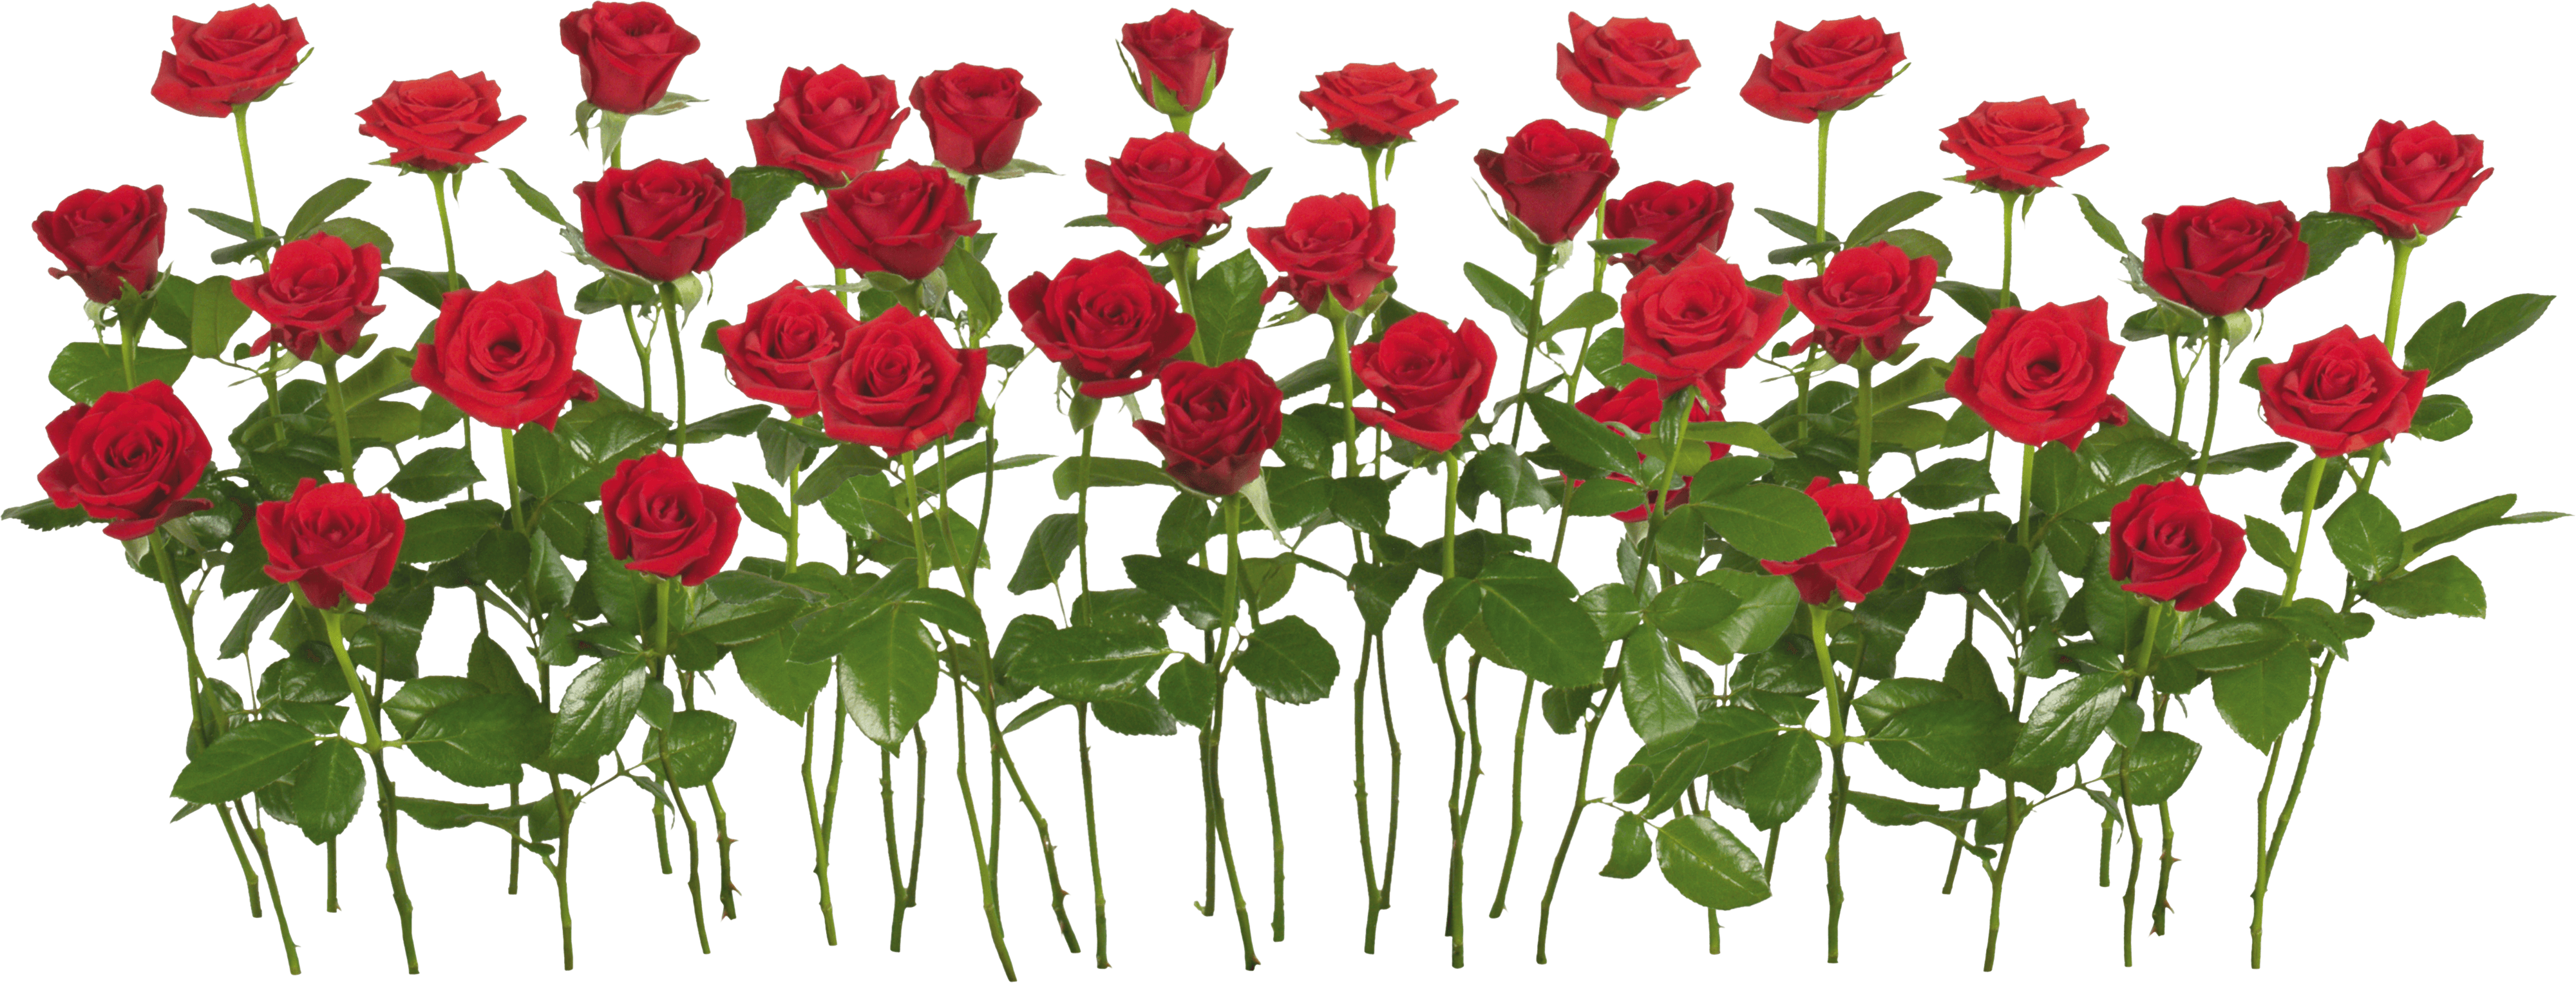 Rose Png Image Picture Download PNG Image